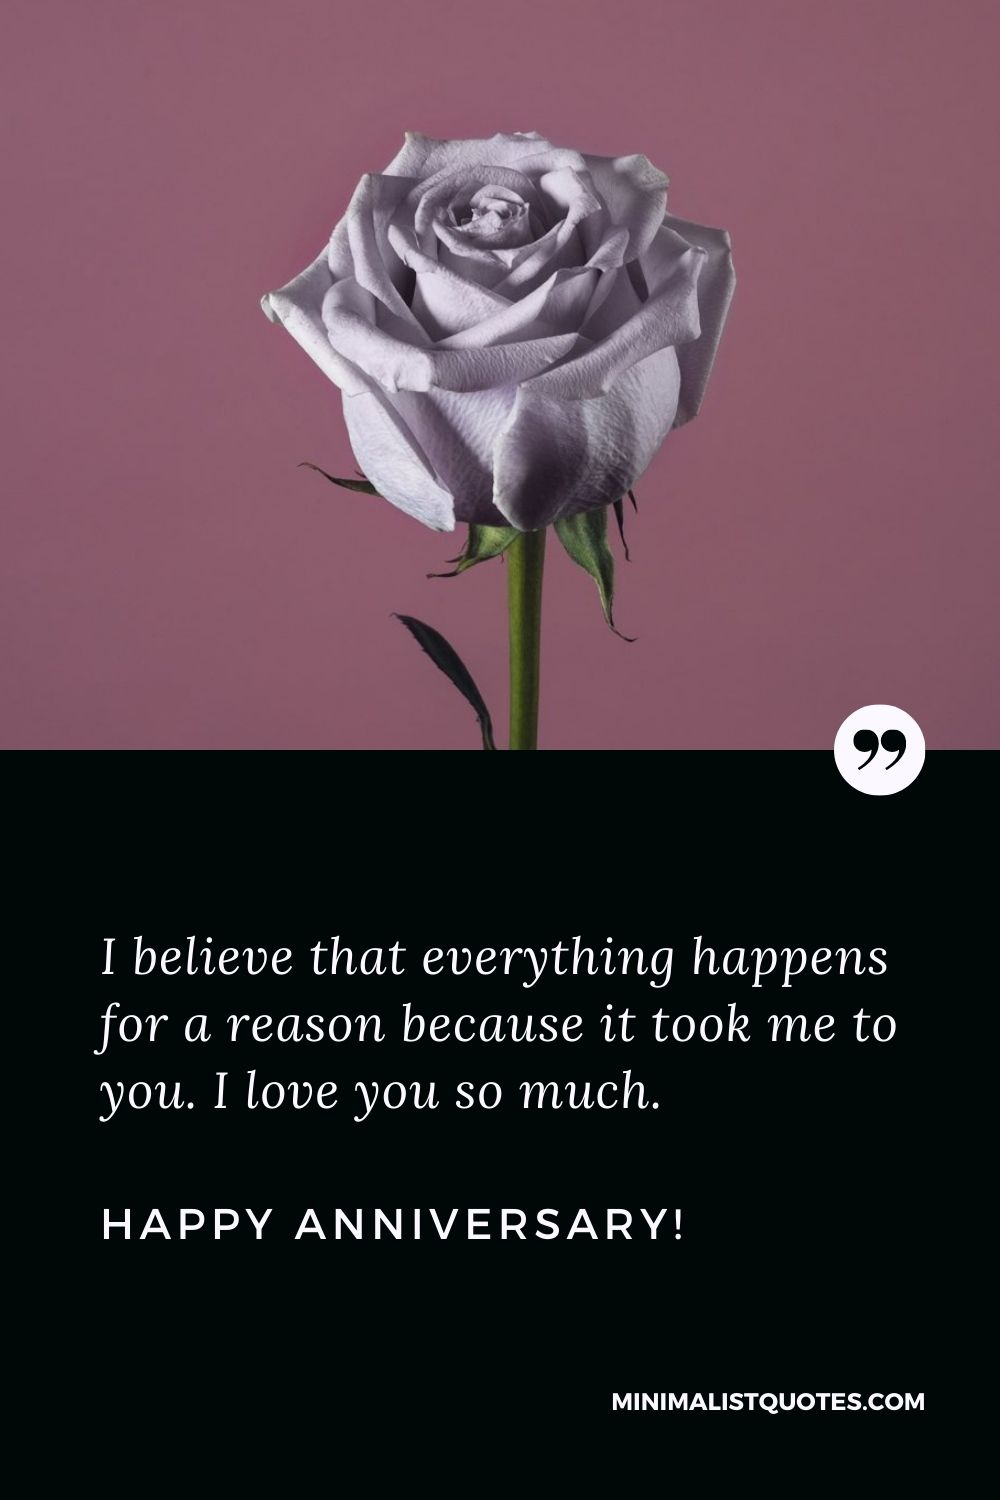 First wedding anniversary wishes: I believe that everything happens for a reason because it took me to you. I love you so much. Happy Anniversary!